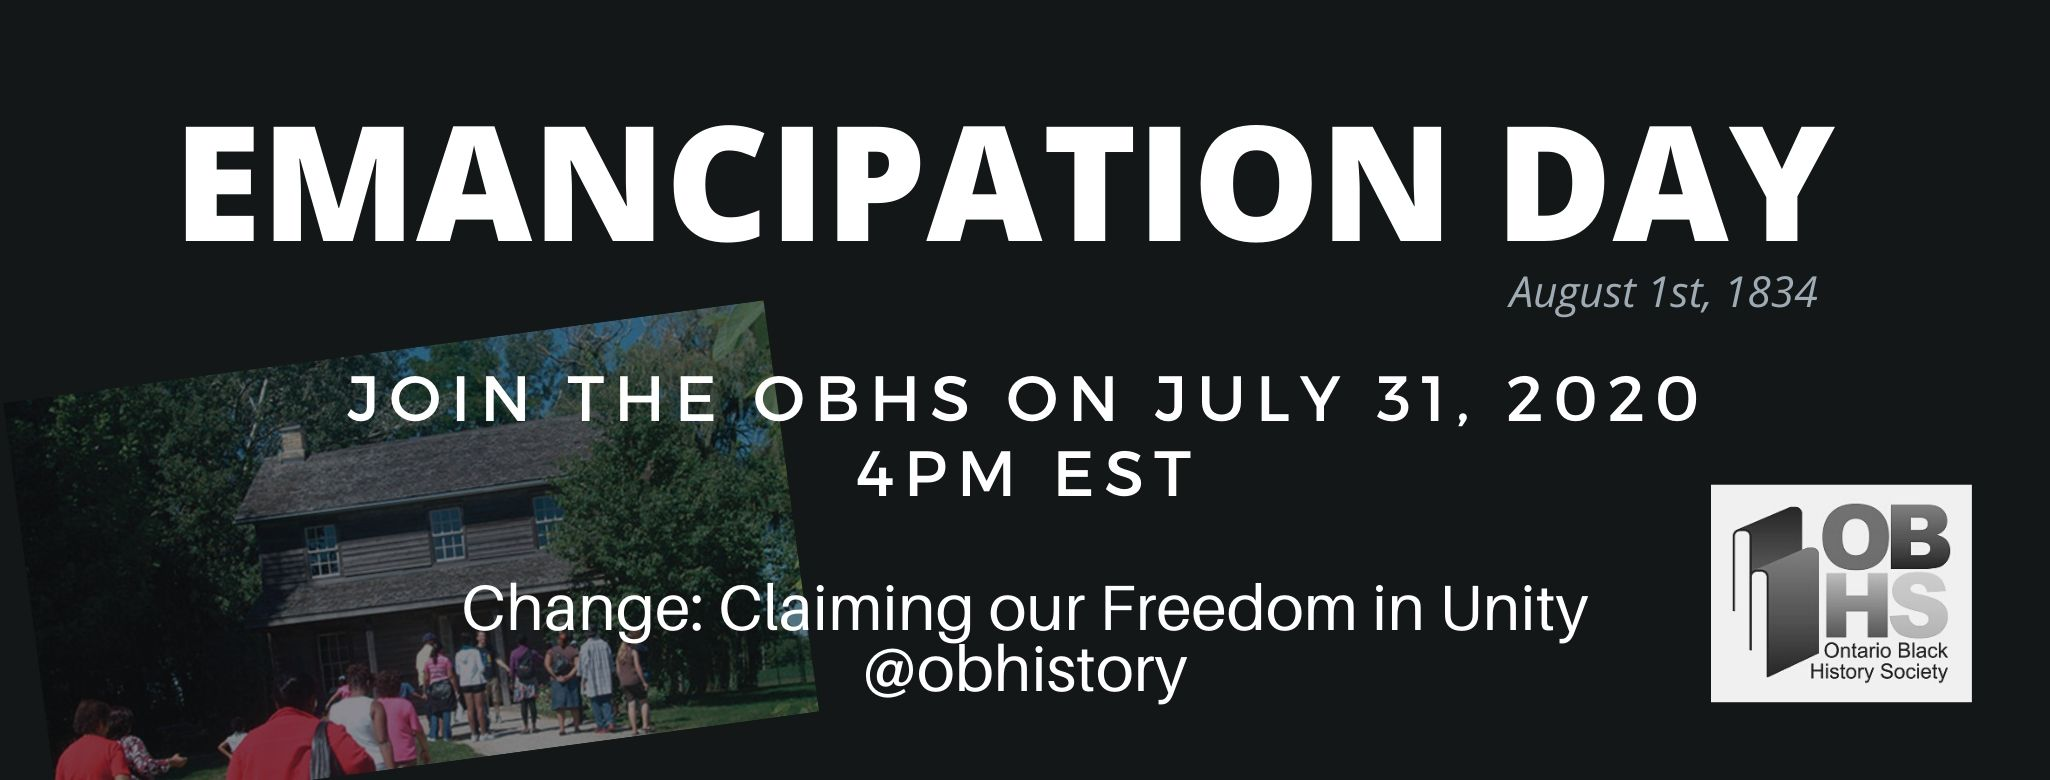 OBHS Emancipation Day 2020